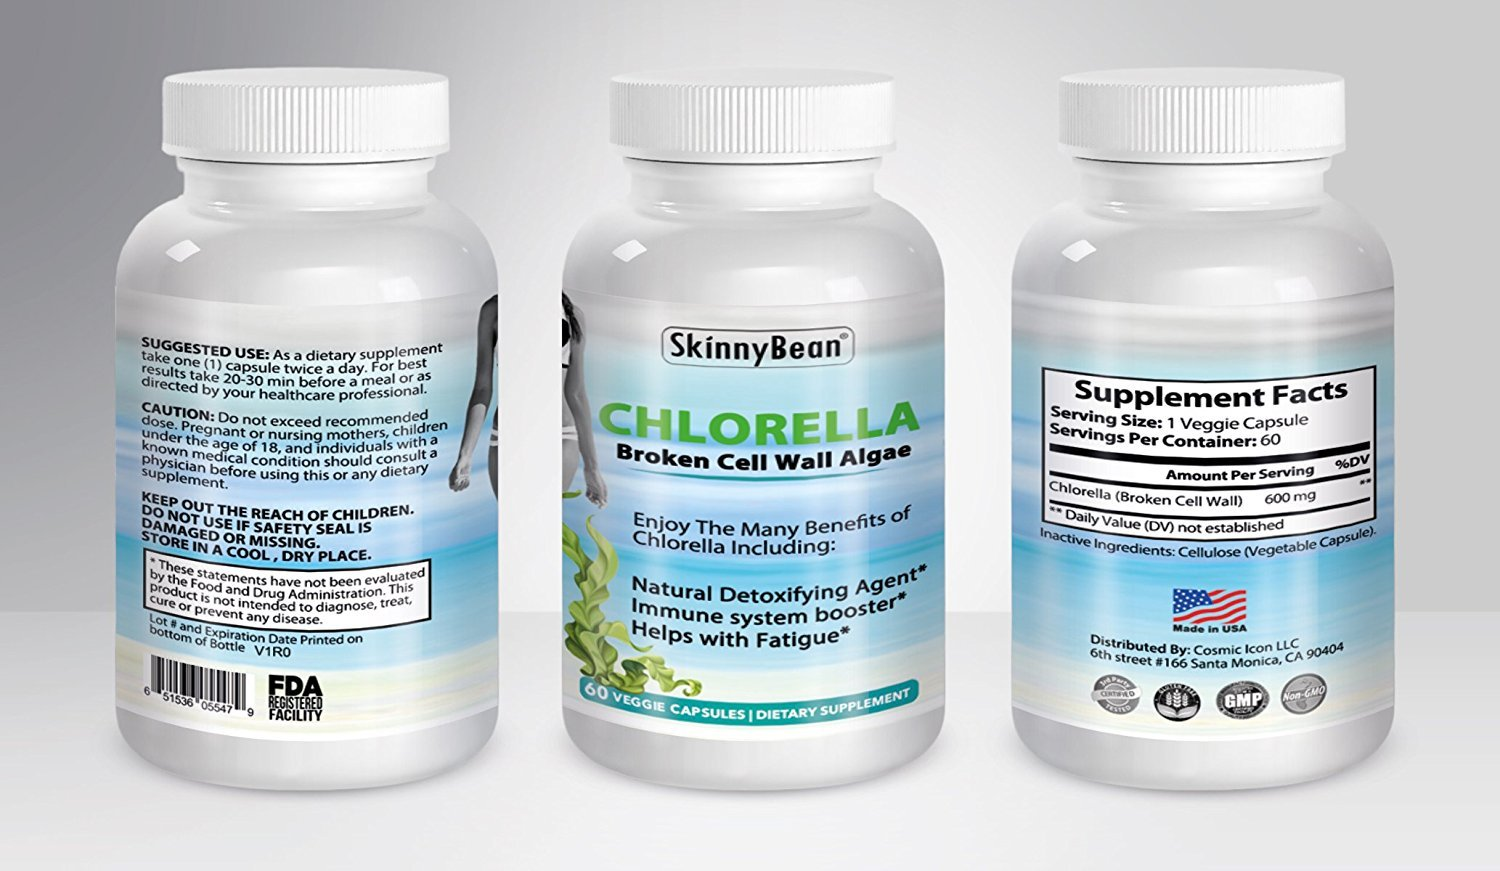 CHLORELLA PURE broken cell wall algae capsules